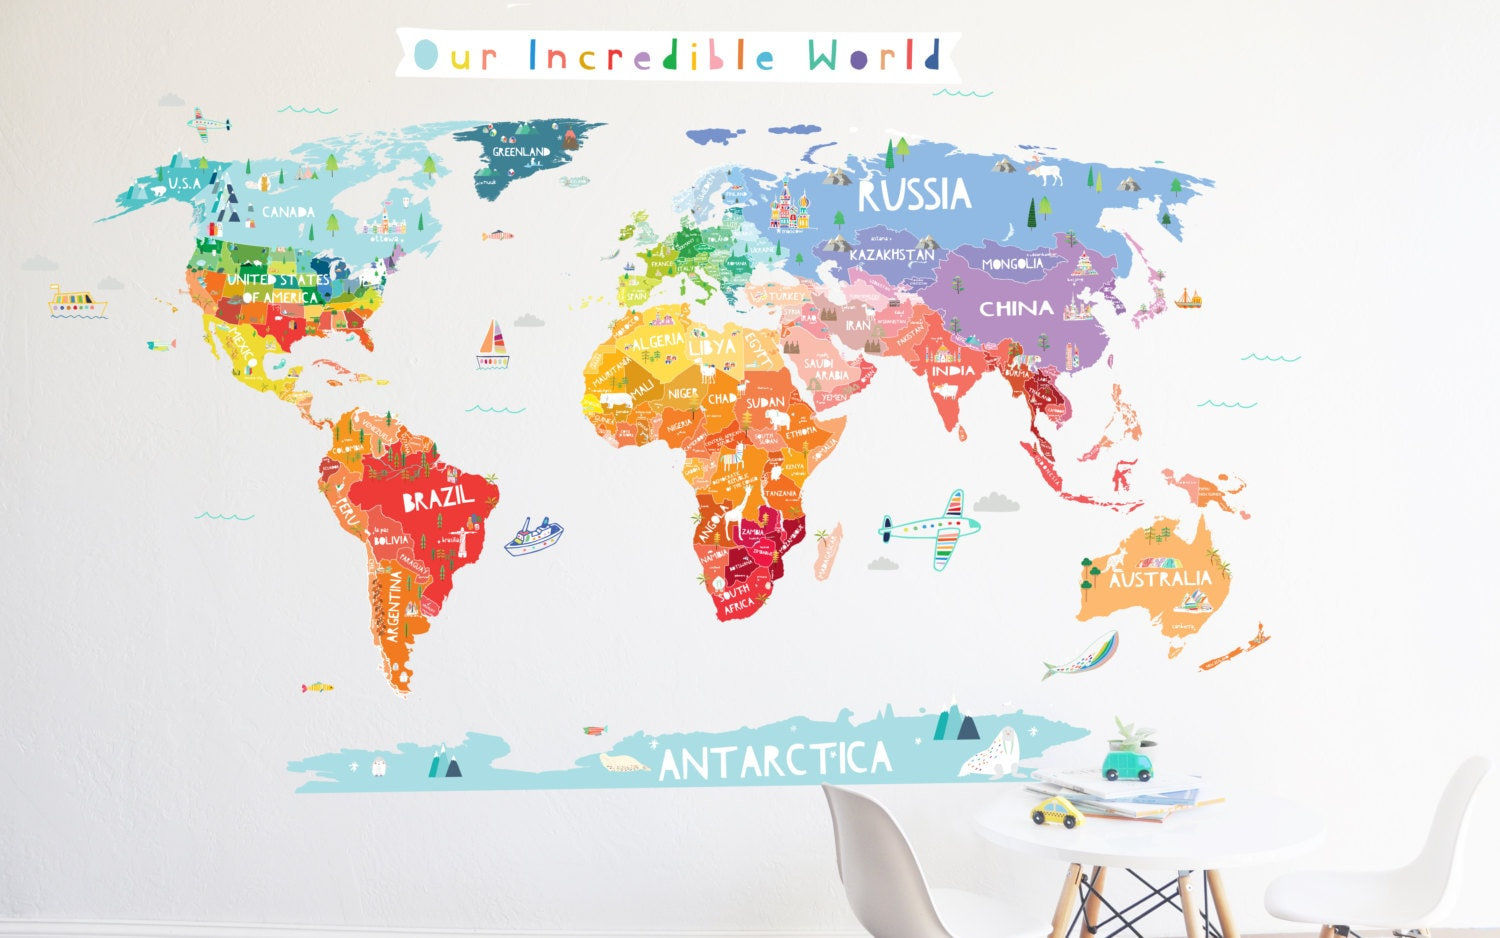 World map wall decal our incredible world world map wall zoom gumiabroncs Choice Image